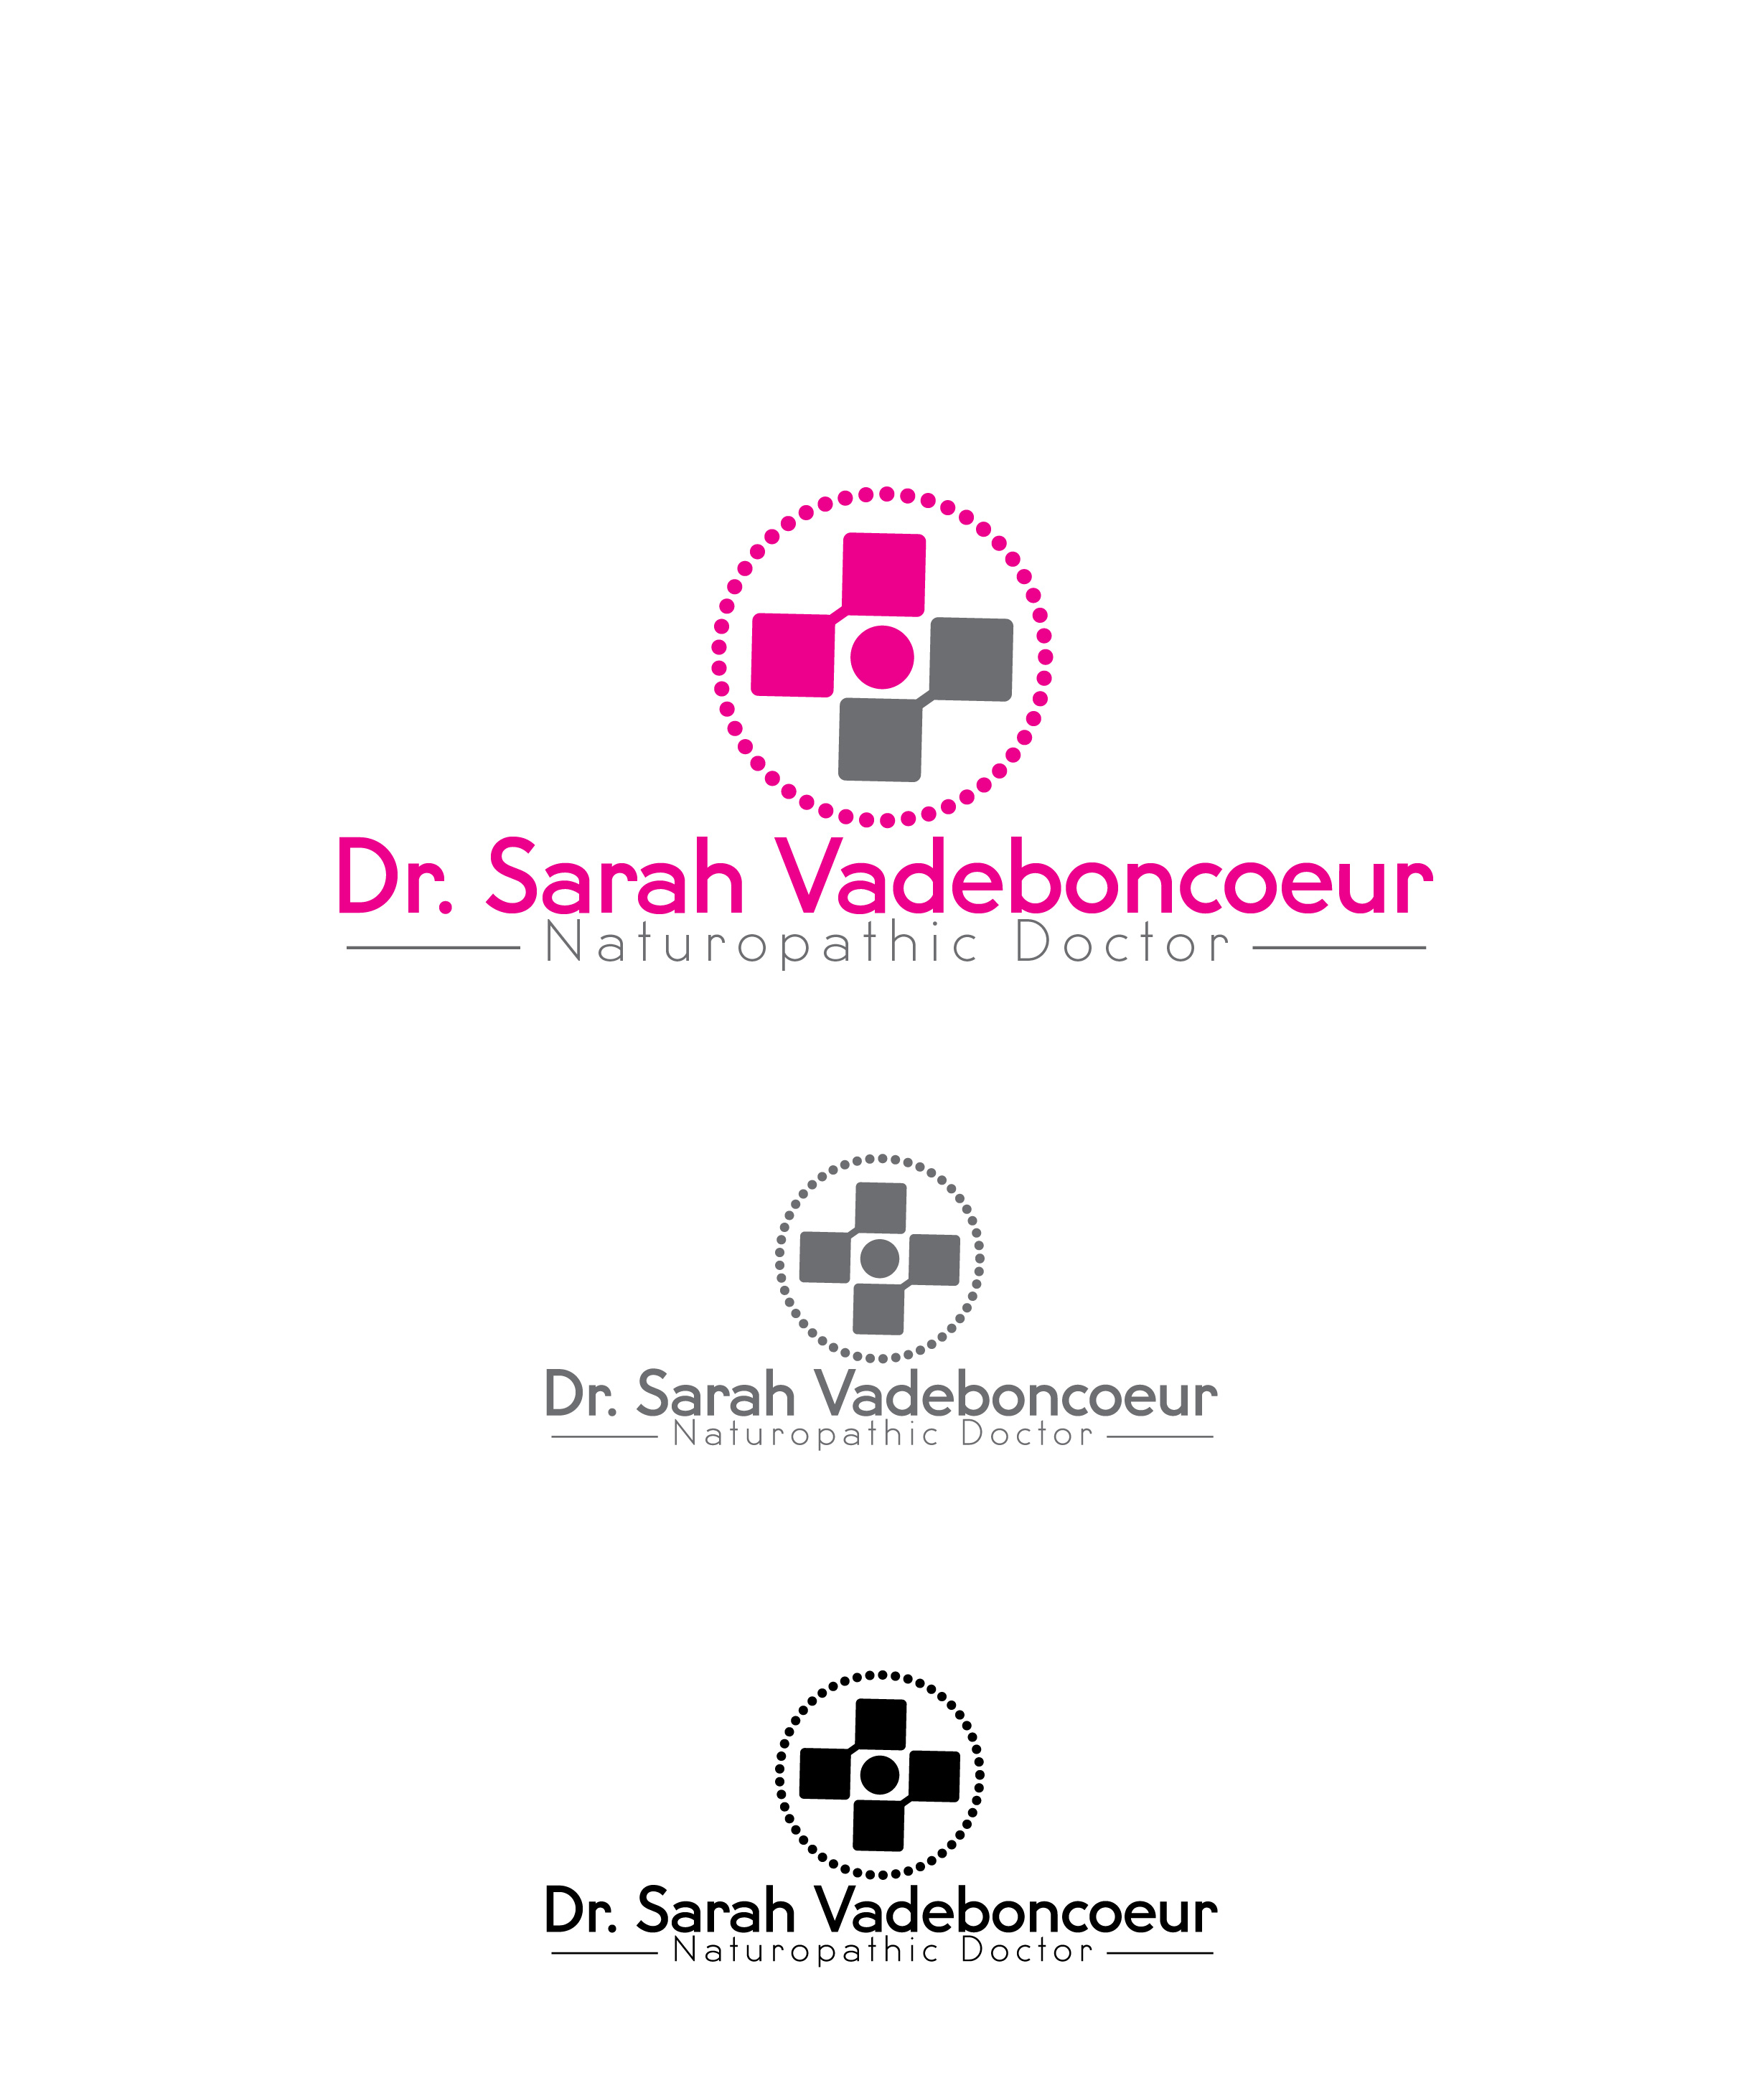 Logo Design by lagalag - Entry No. 97 in the Logo Design Contest New Logo Design for Dr. Sarah Vadeboncoeur, Naturopathic Doctor.